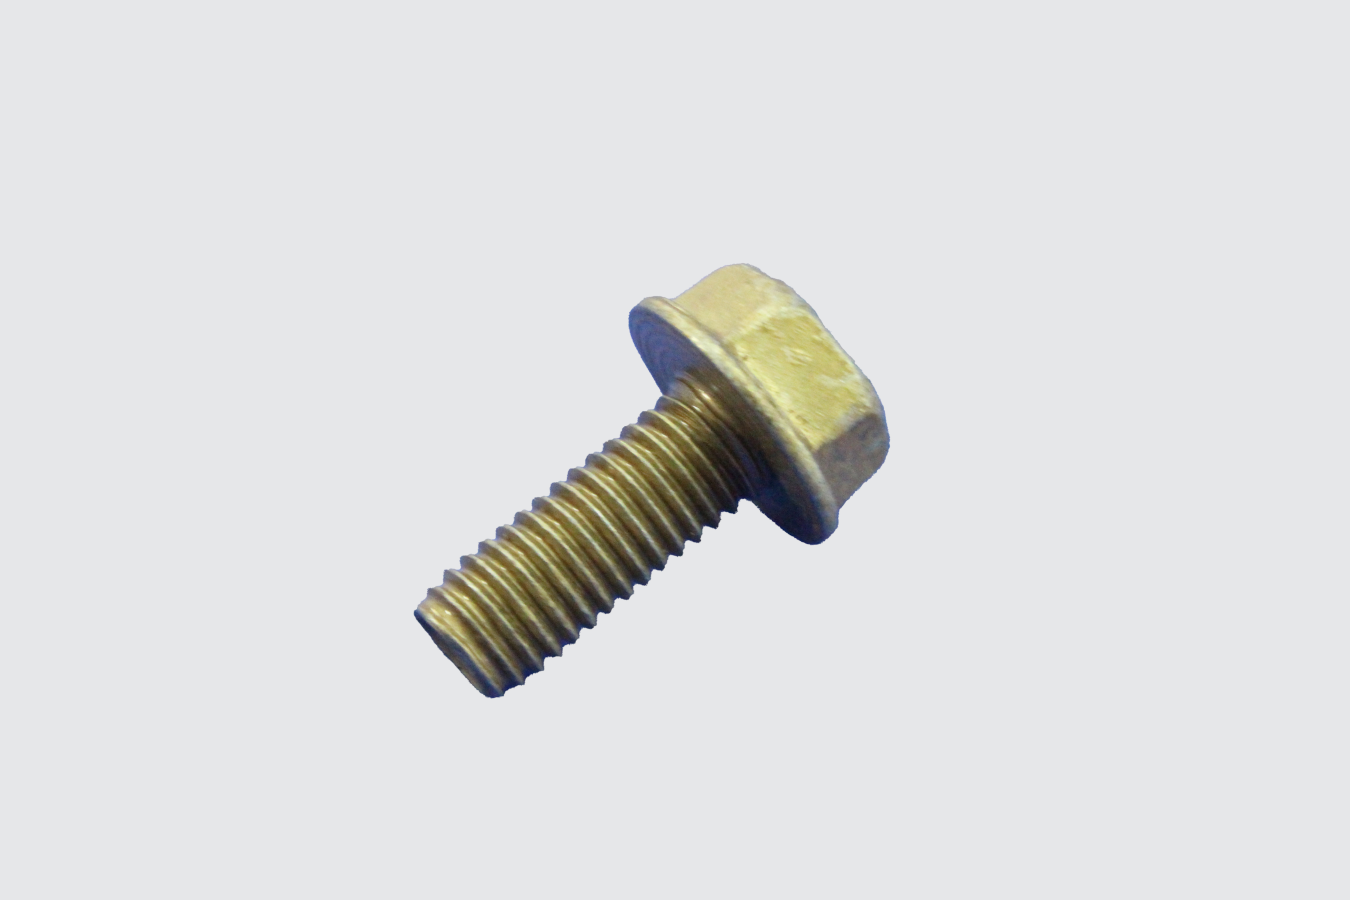 35279025-SCREW, M8-1.25 X 20 MM LG WASHER HEX HD TAPPING BRONZE